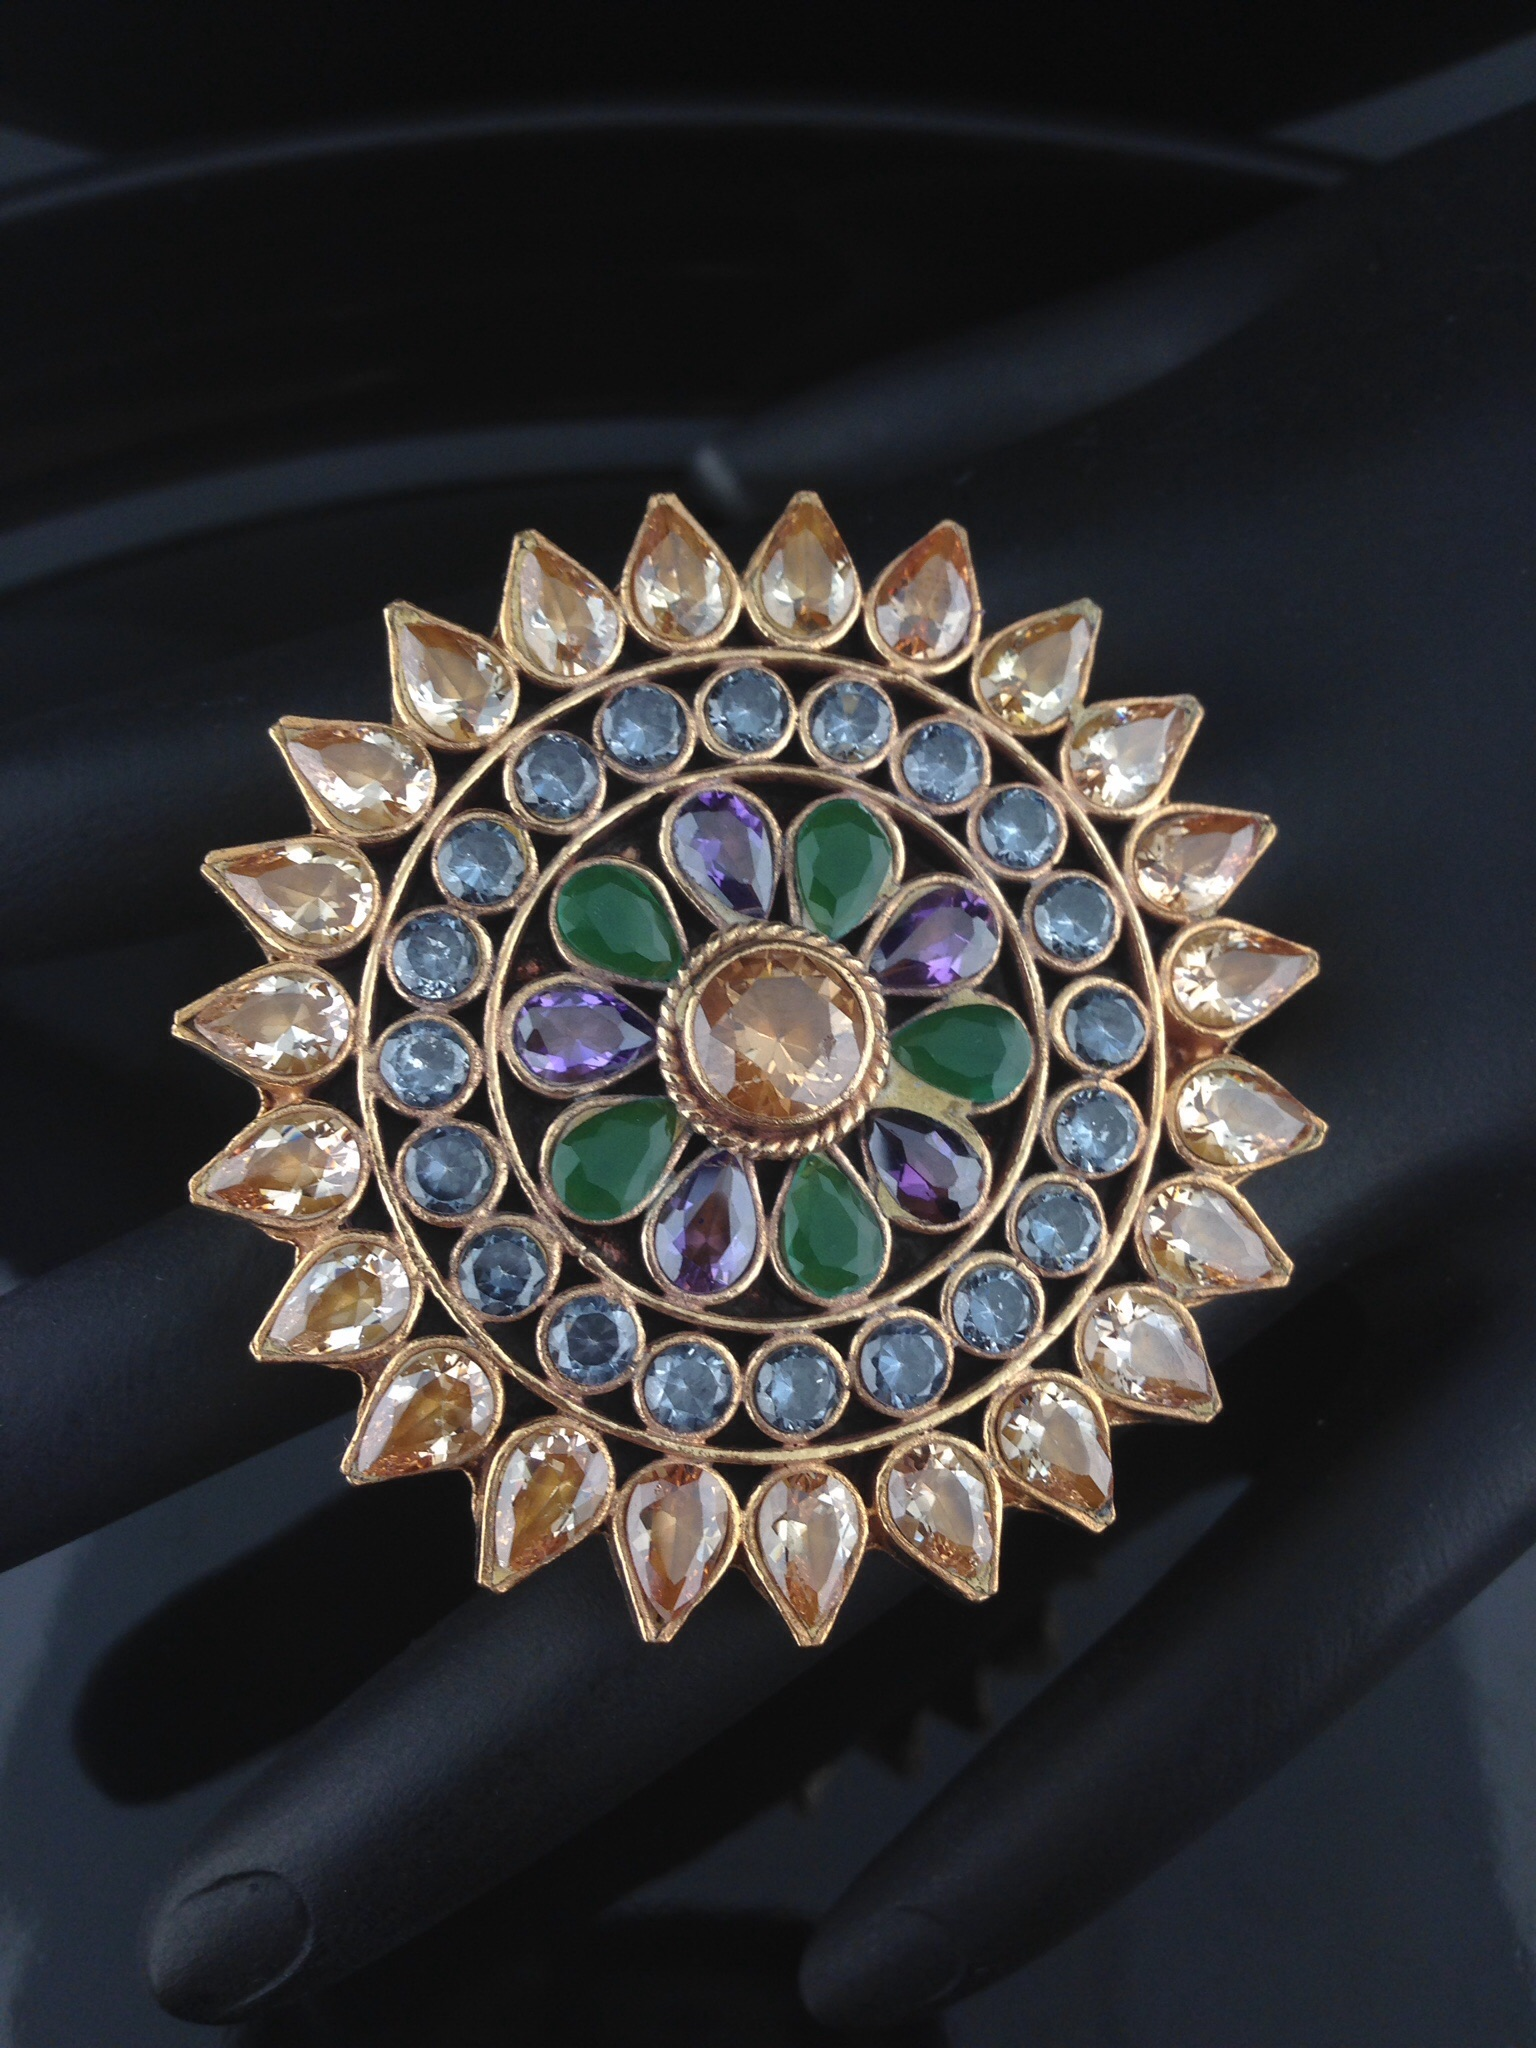 Kundan Rings with Multicolored Stones